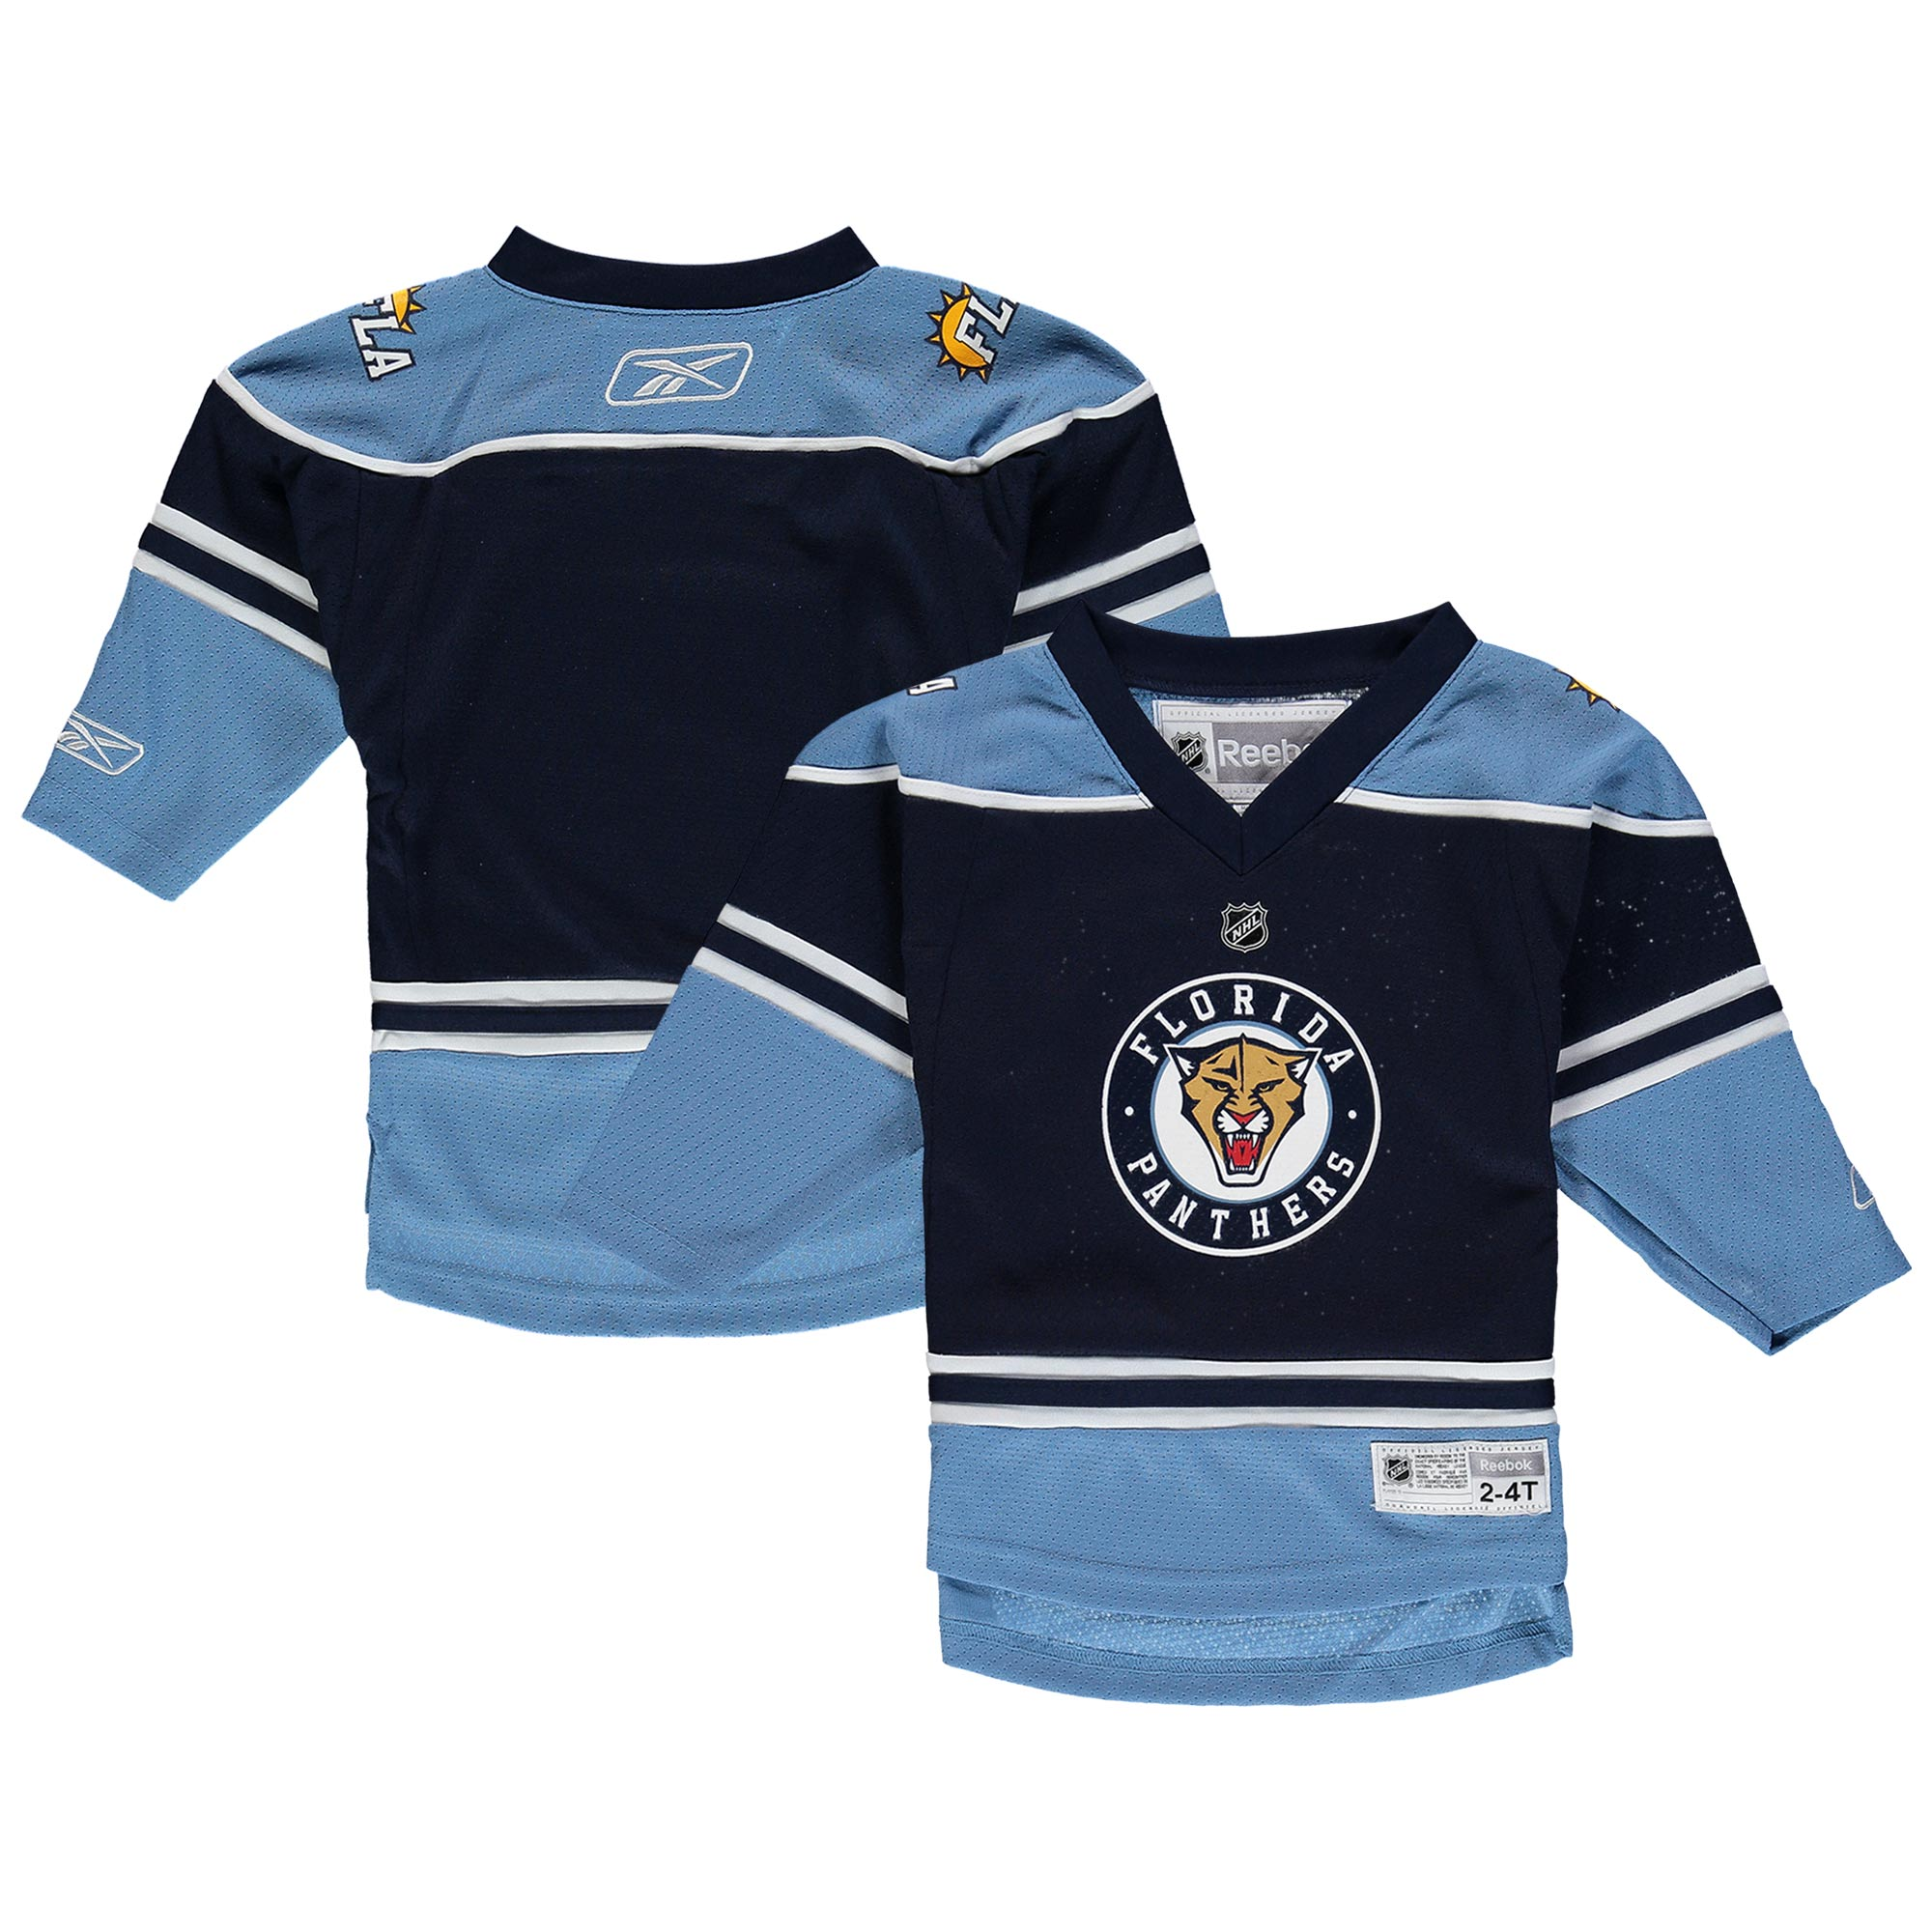 Florida Panthers Reebok Toddler Replica Jersey - Navy - 2T-4T